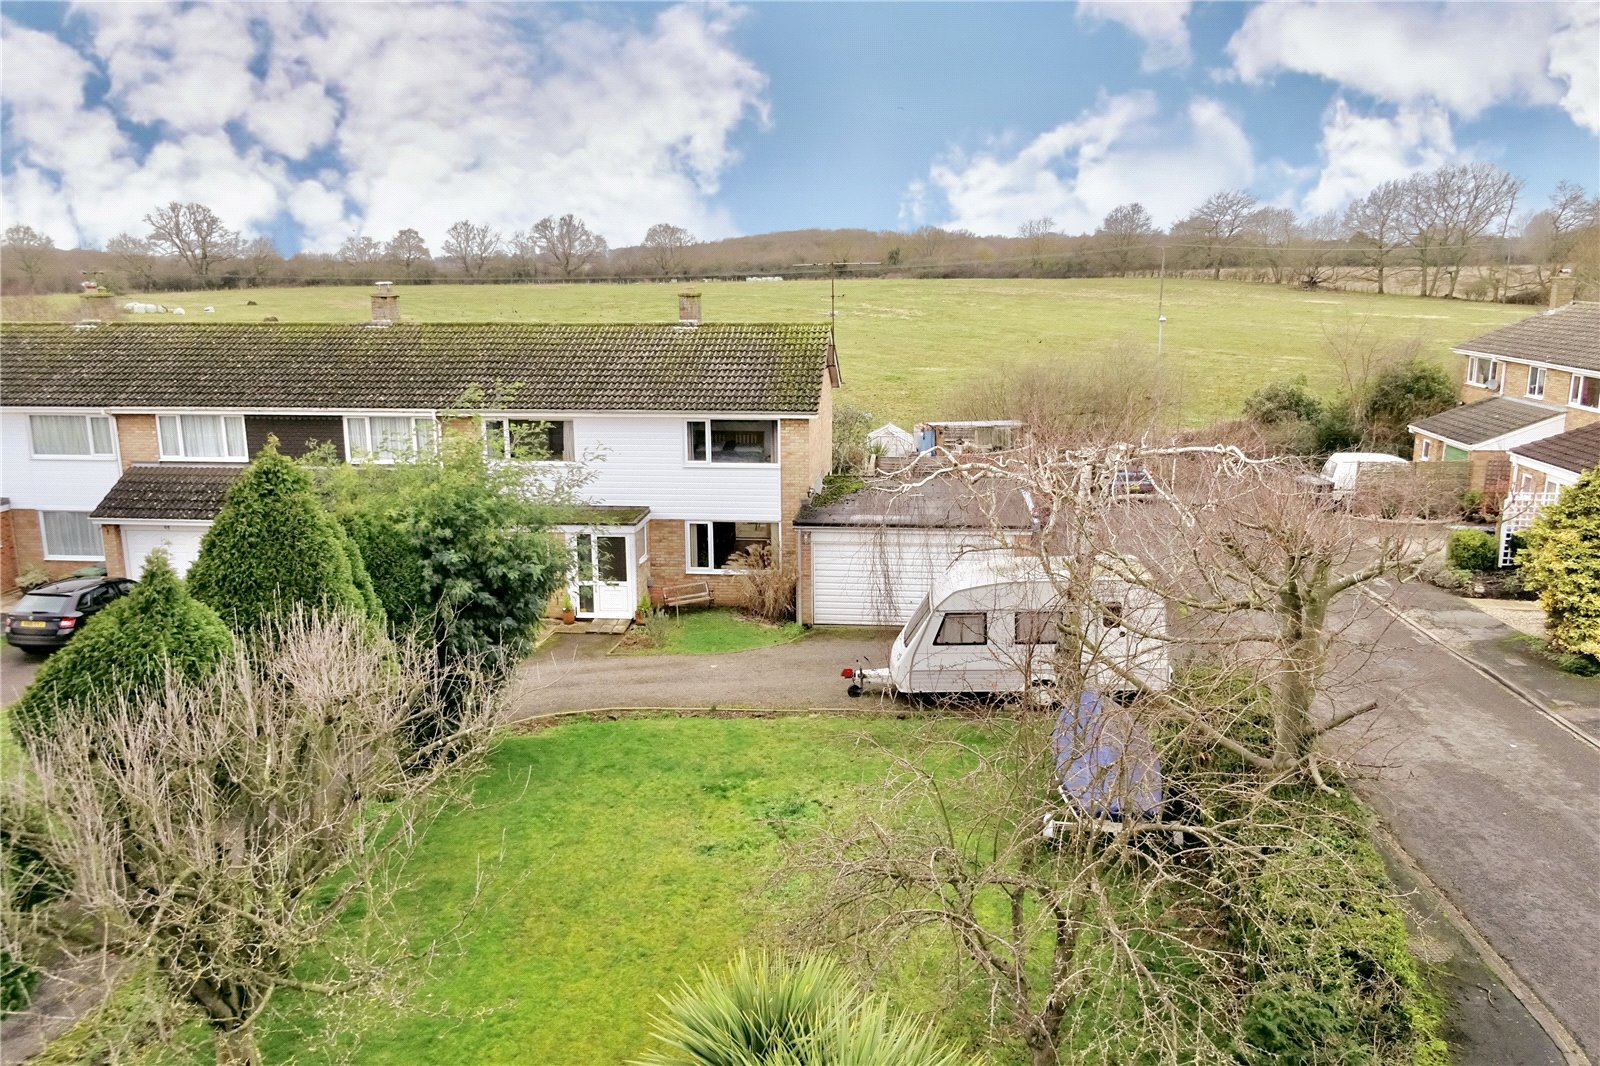 3 bed house for sale in Green Acres, Gamlingay 3